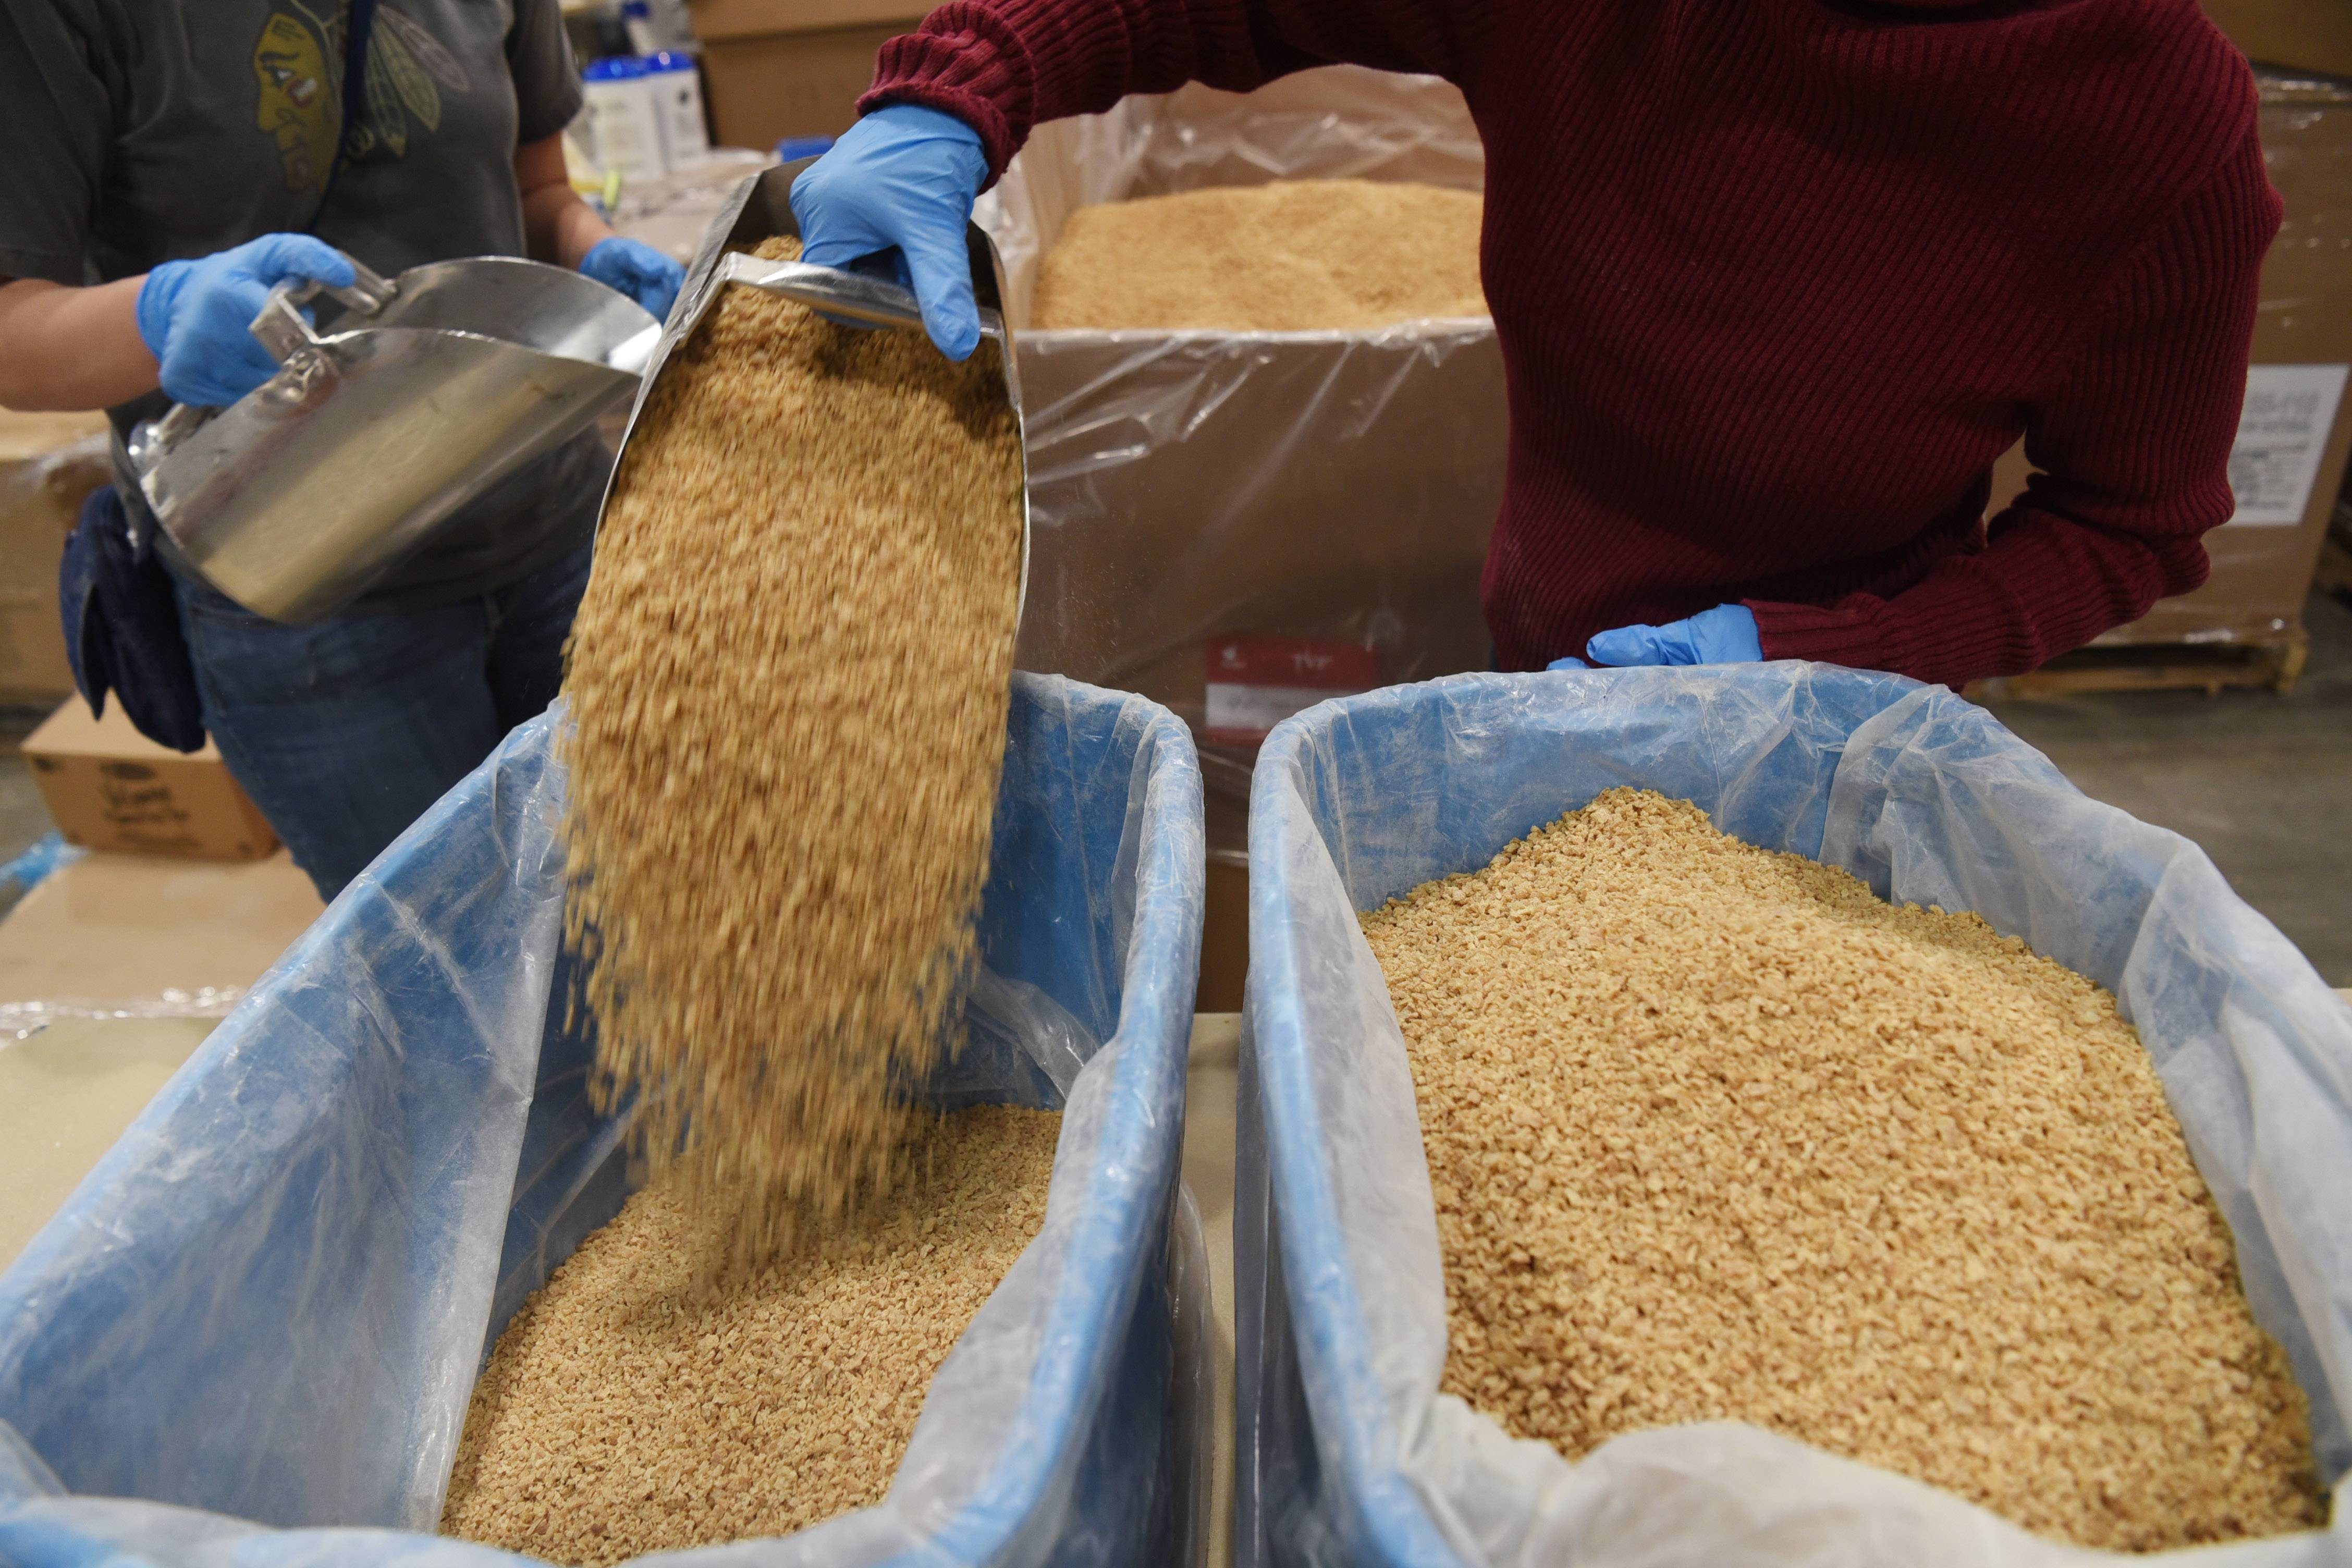 Soy product is transferred into bins Sunday during Feed My Starving Children's Hope Filled Holiday MobilePack event at the Renaissance Schaumburg Convention Center. Thousands of volunteers packed an estimated 1 million meals during the three-day event.